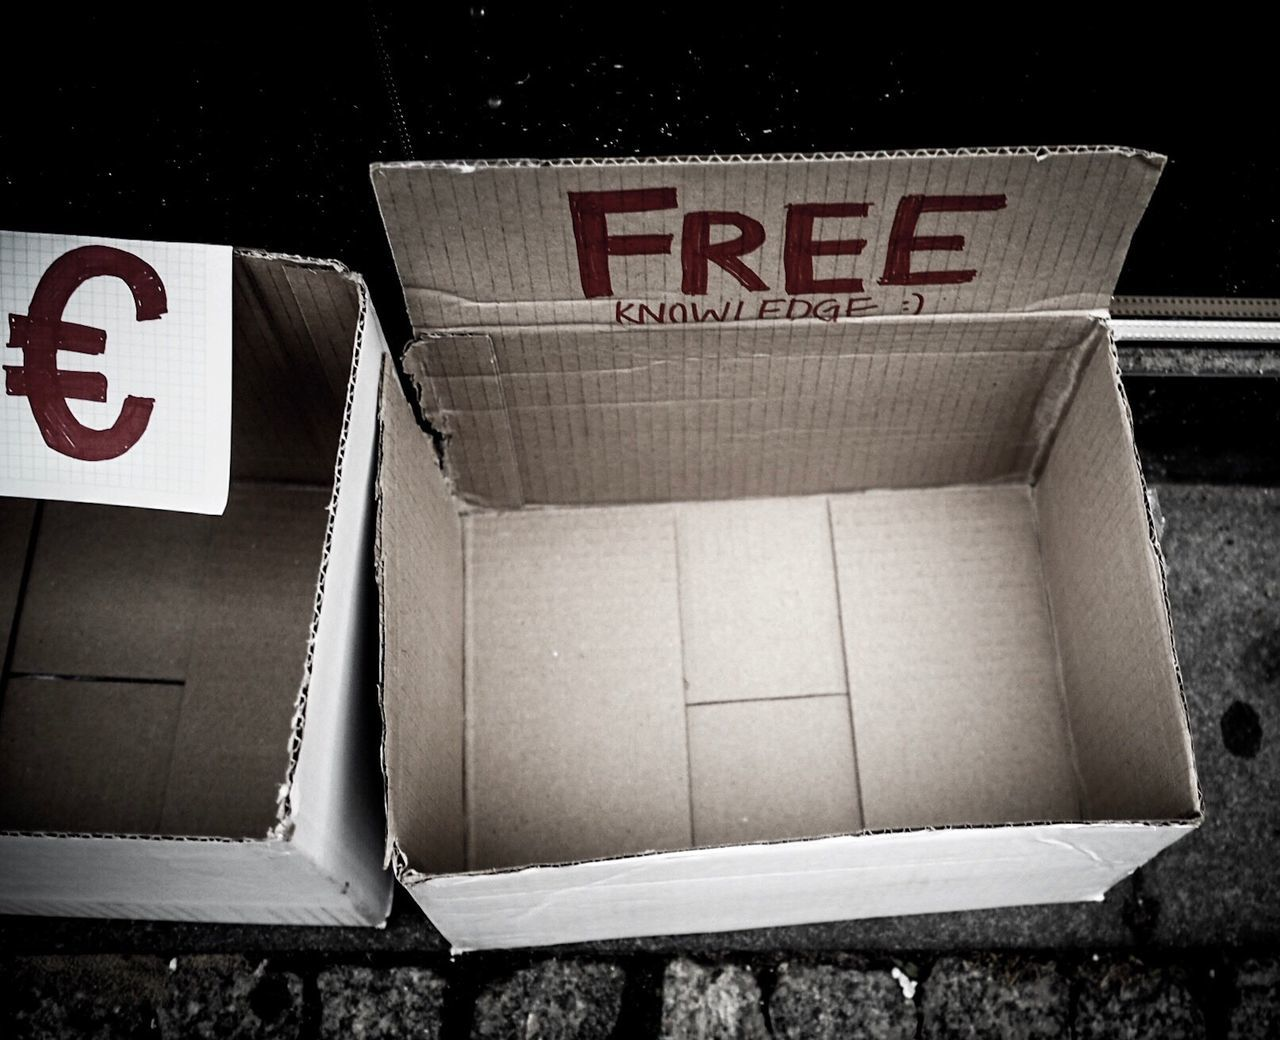 text, western script, communication, capital letter, no people, outdoors, day, placard, cardboard box, close-up